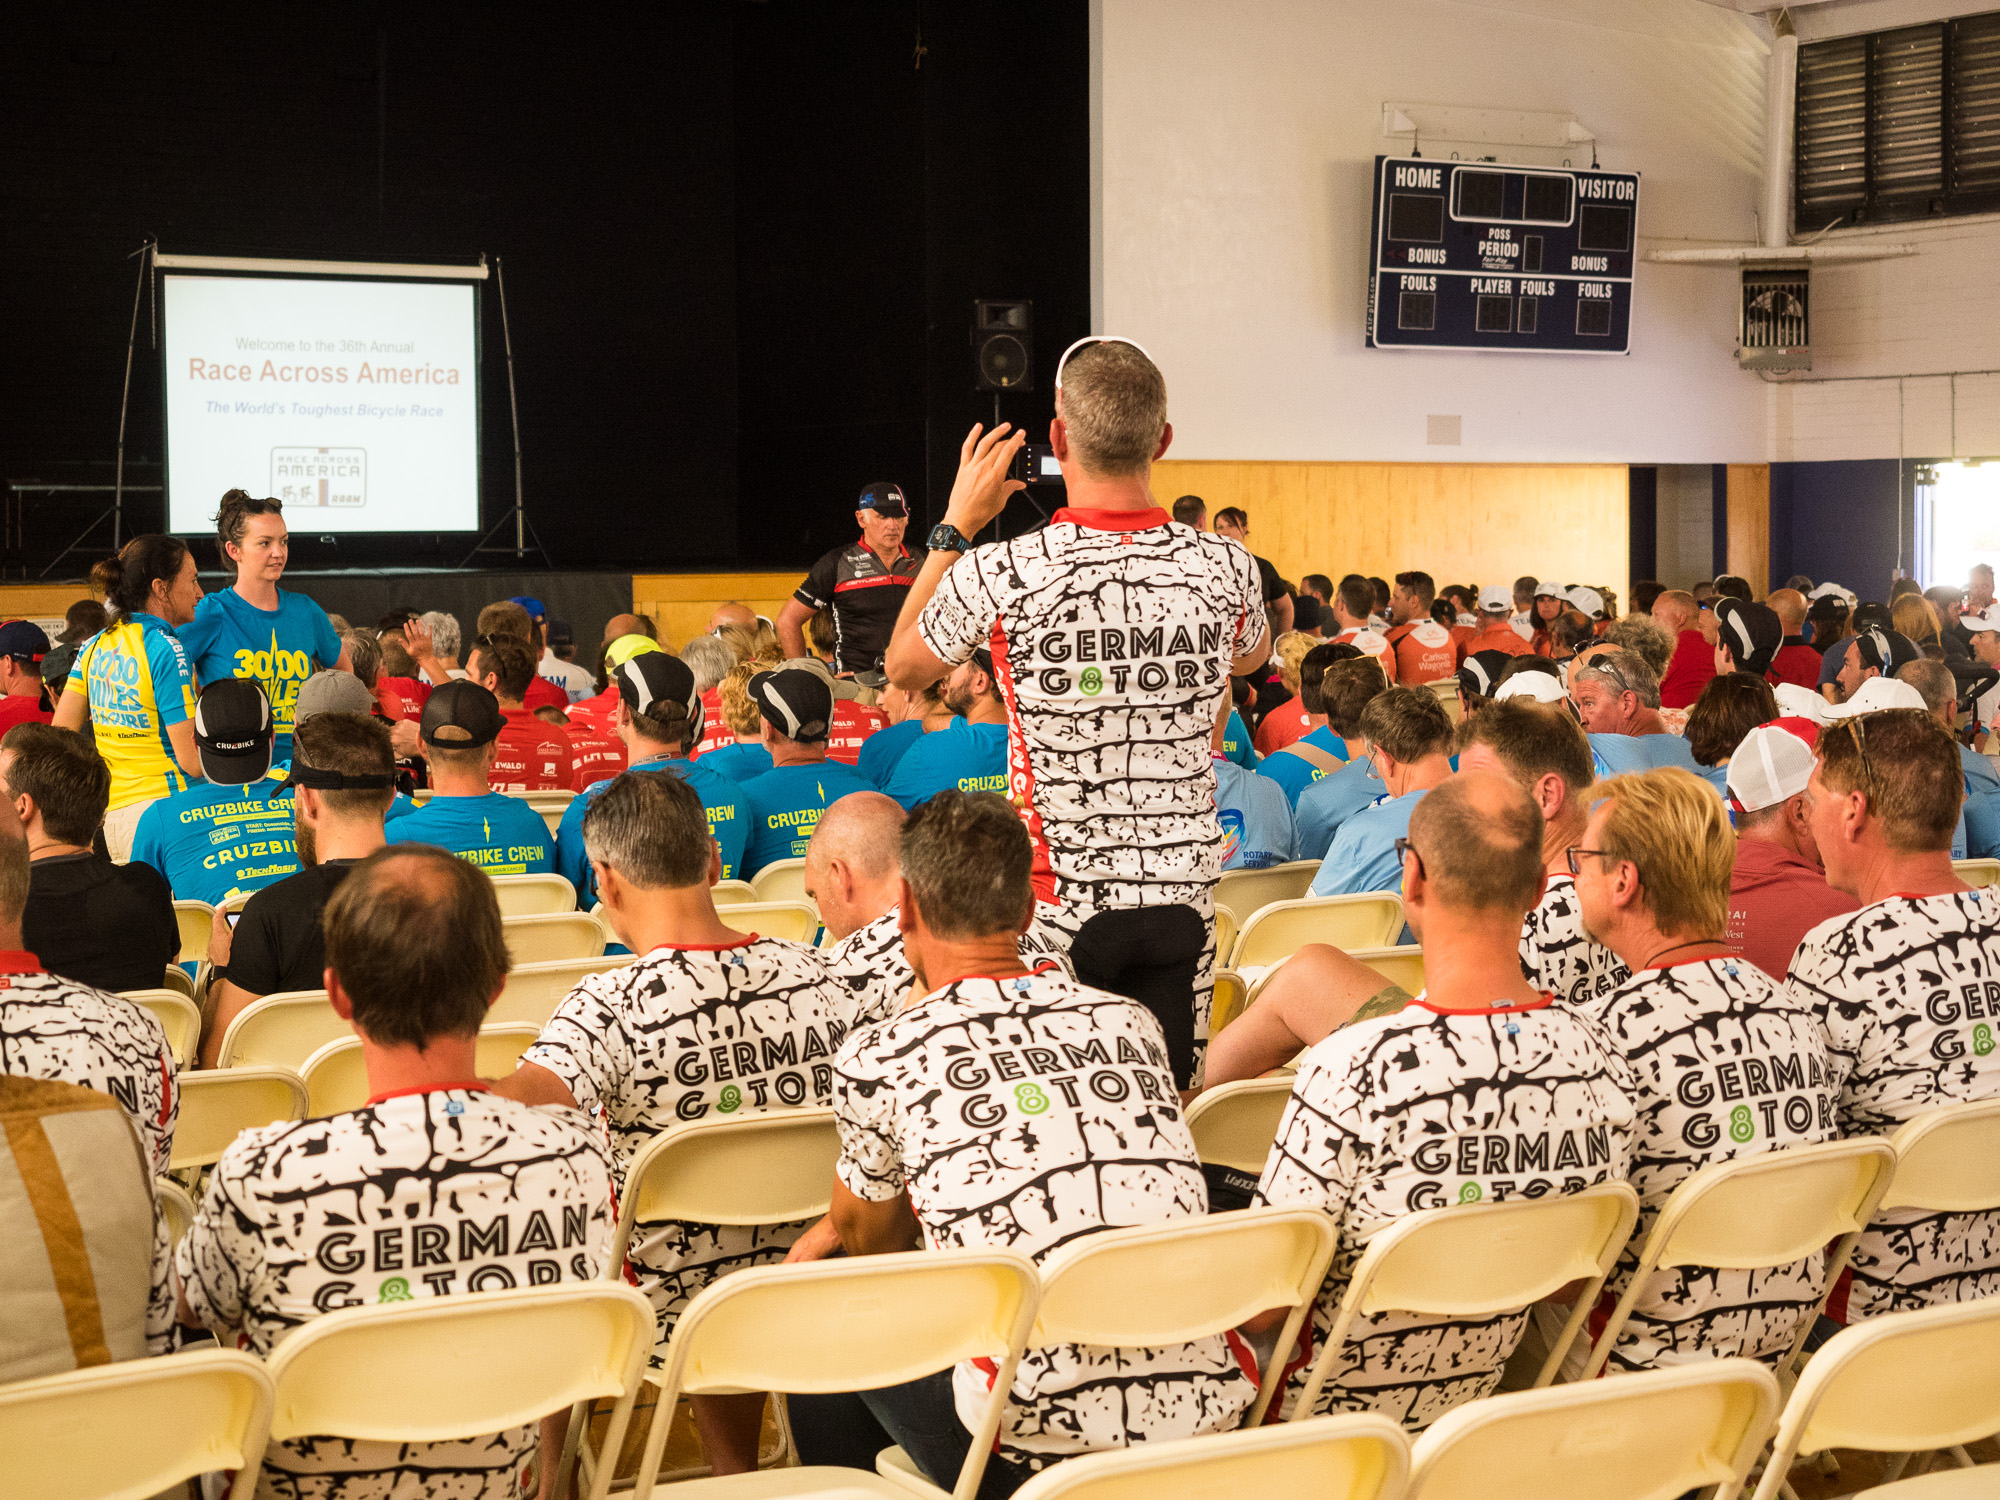 RAAM racer briefing